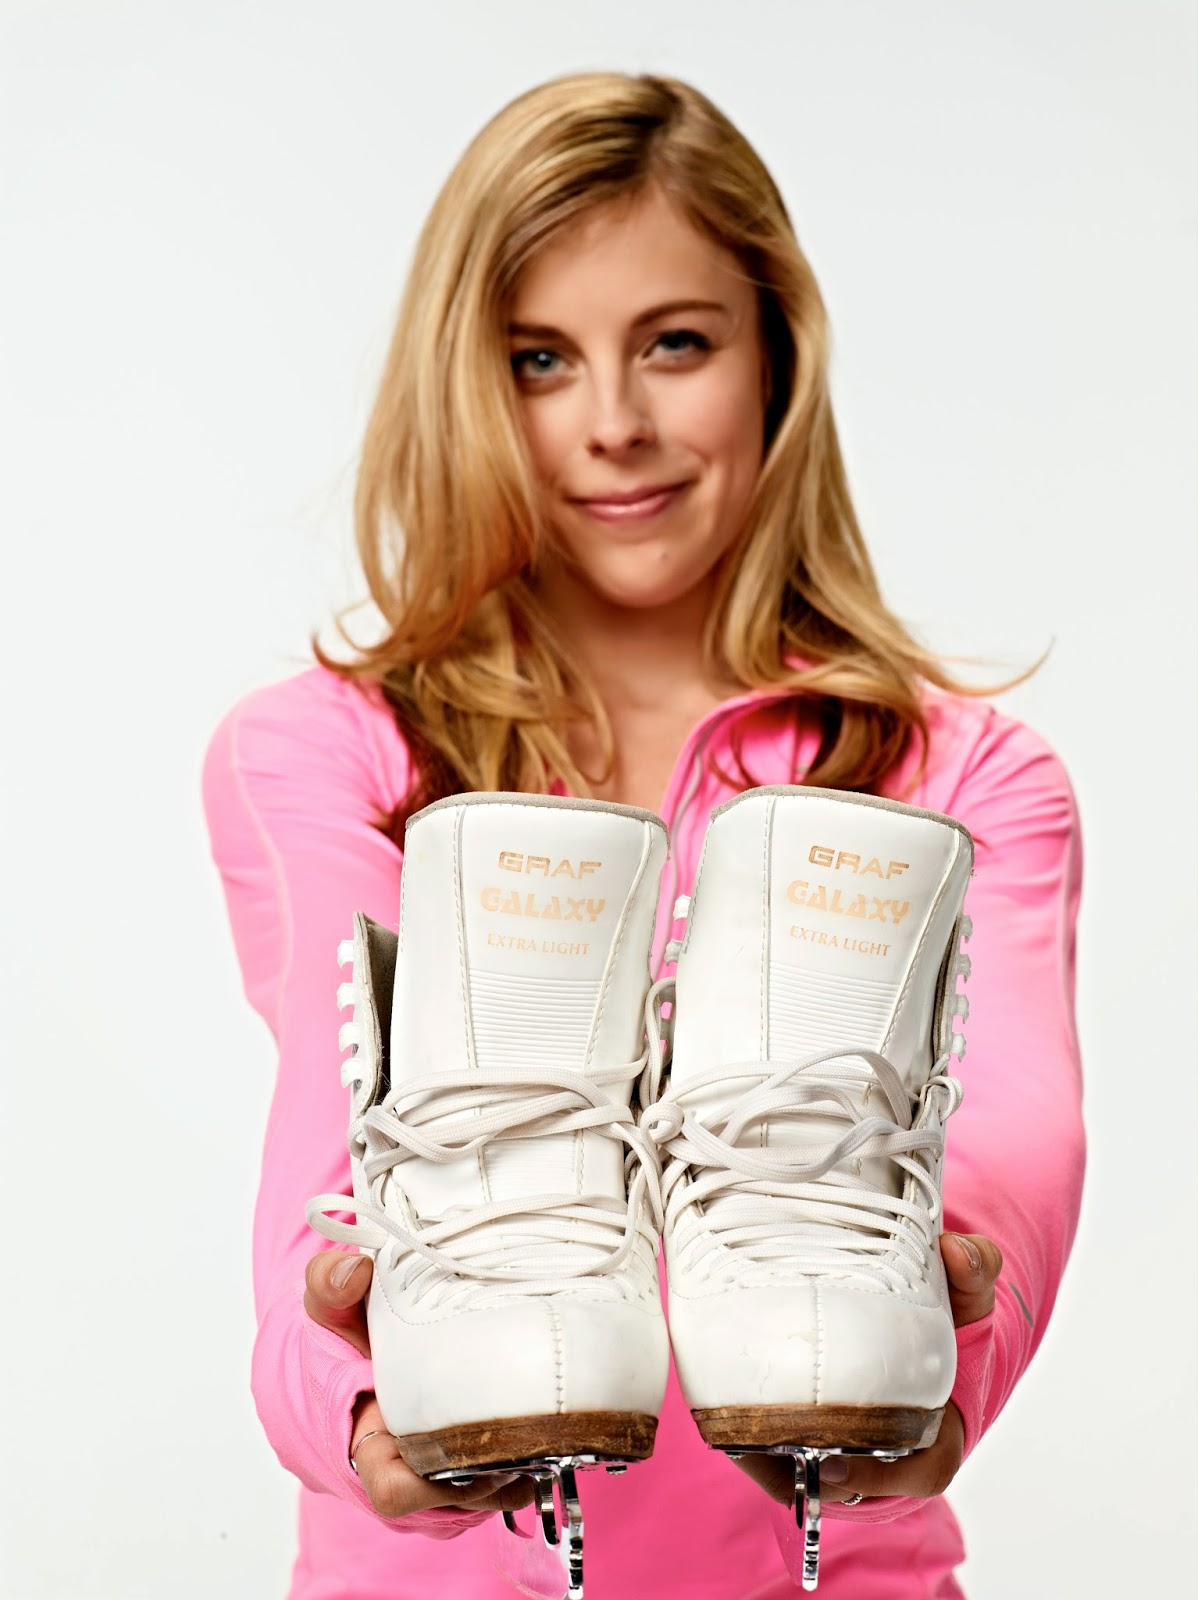 U.S. bronze medalist Ashley Wagner